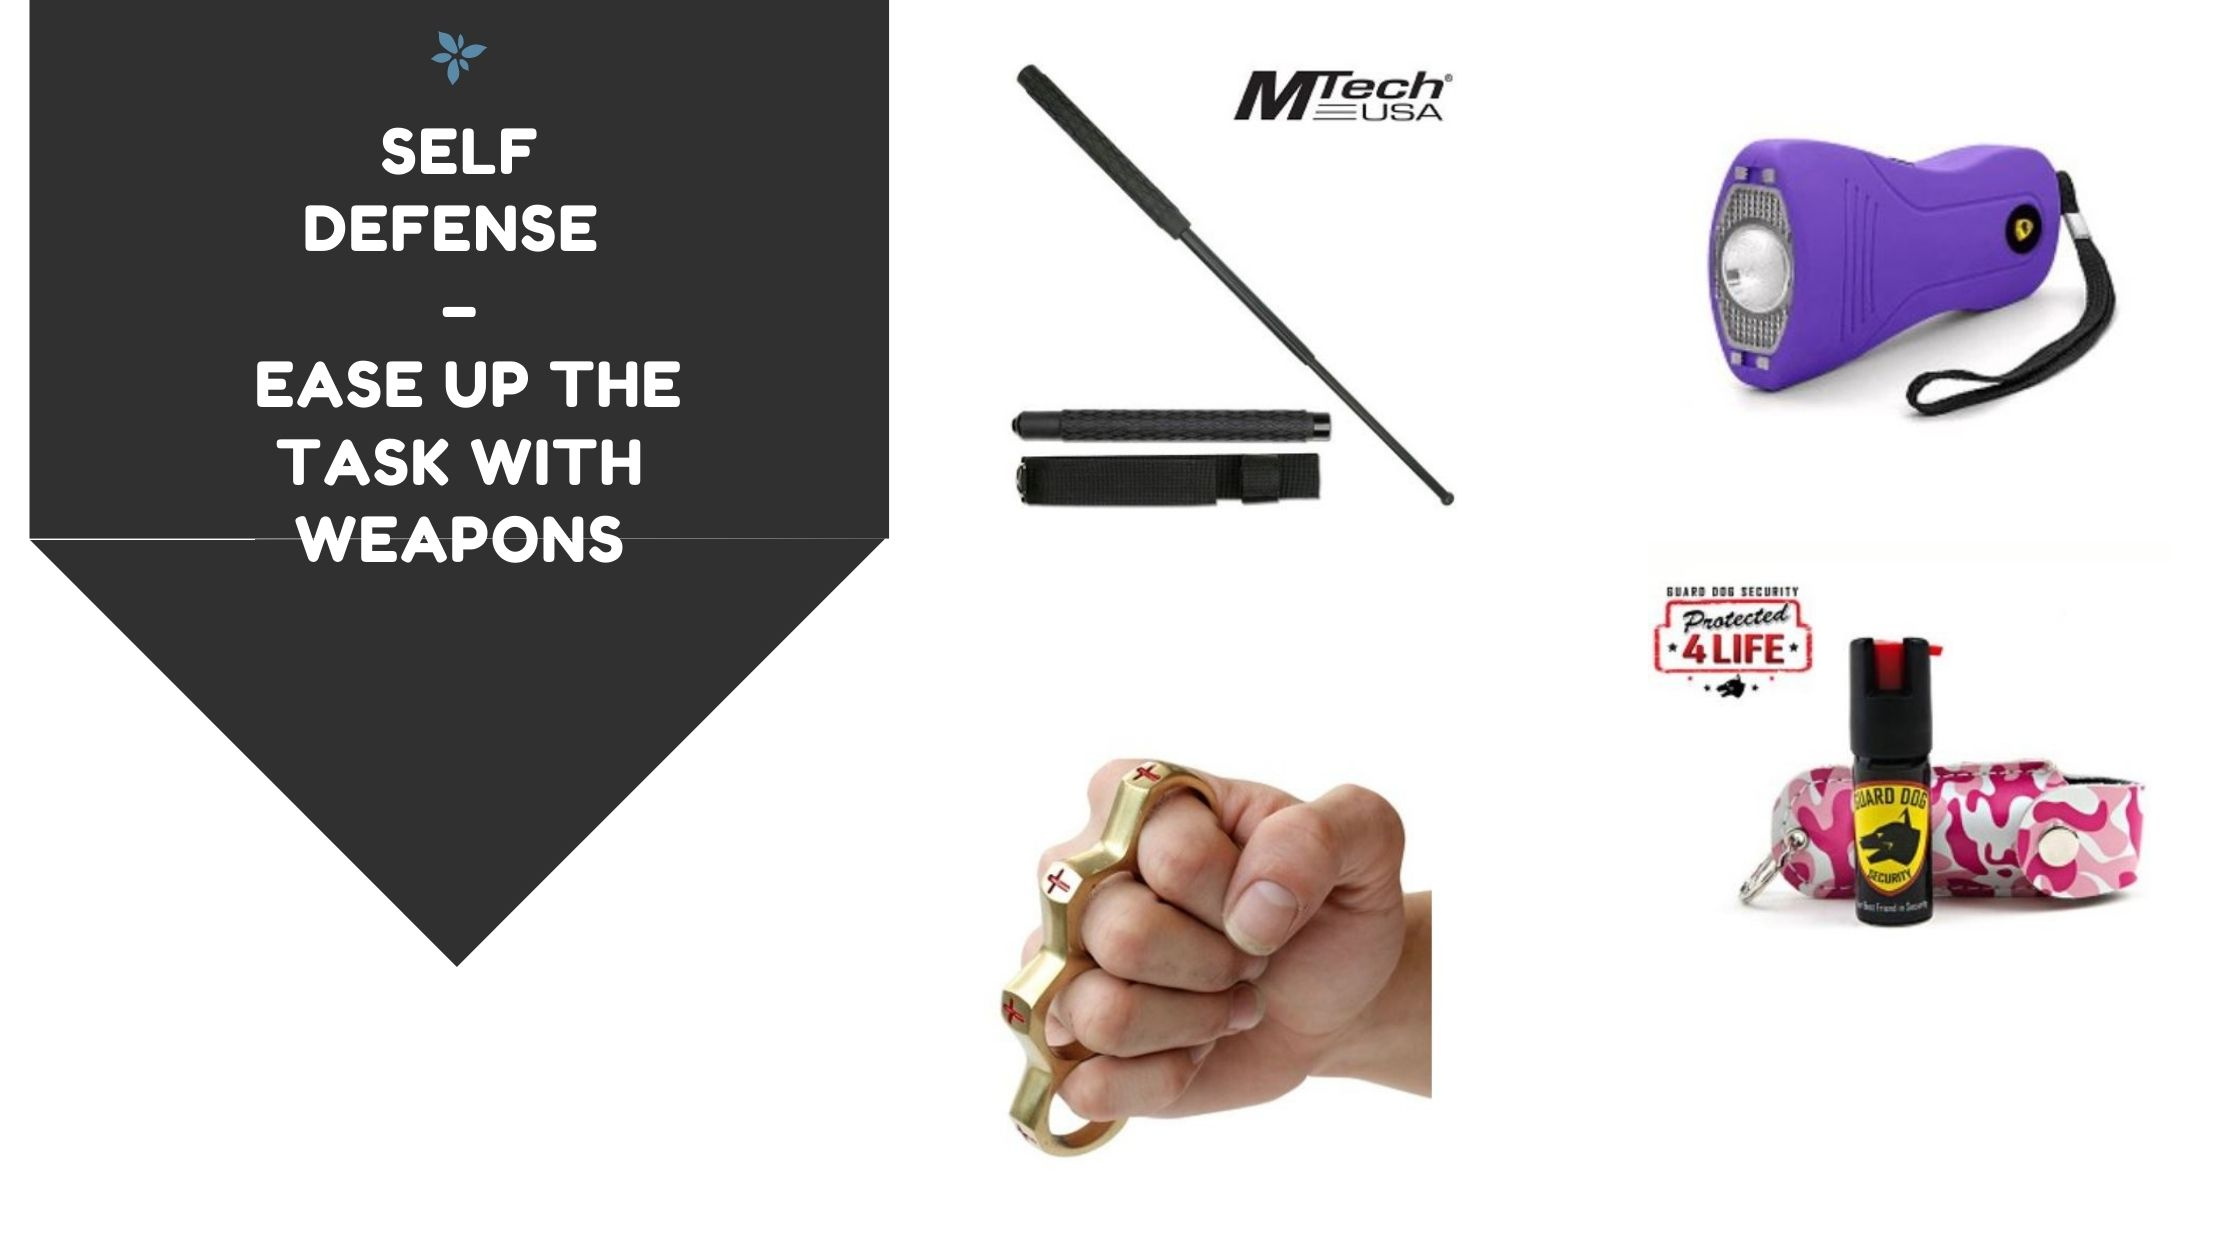 Self Defense – Ease Up the Task With Weapons